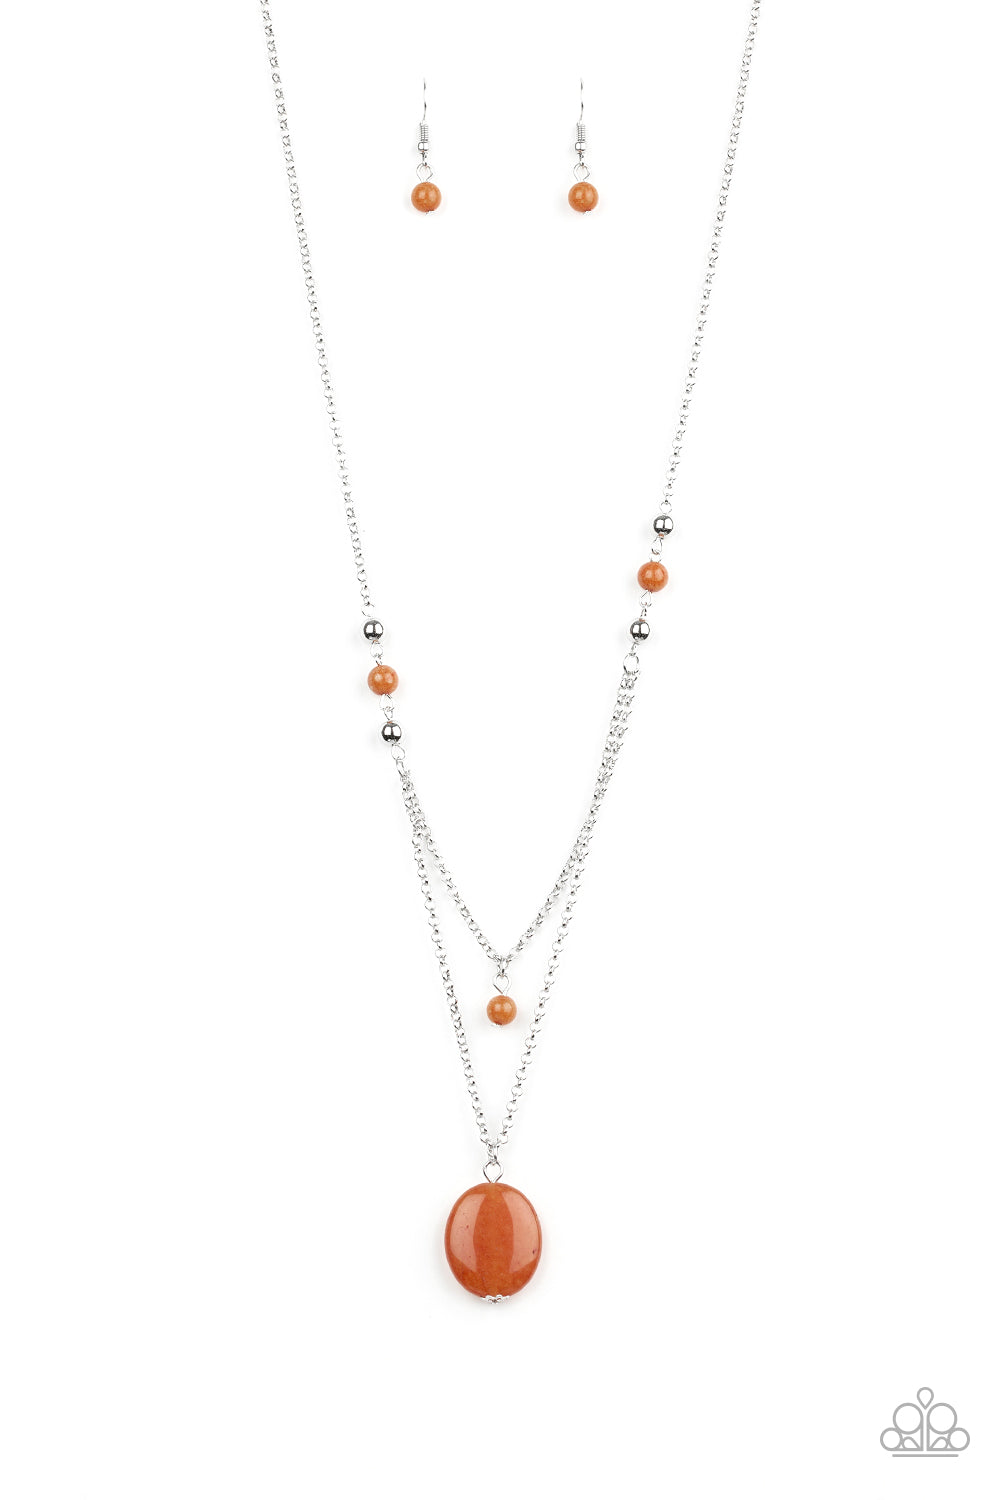 five-dollar-jewelry-time-to-hit-the-roam-orange-necklace-paparazzi-accessories